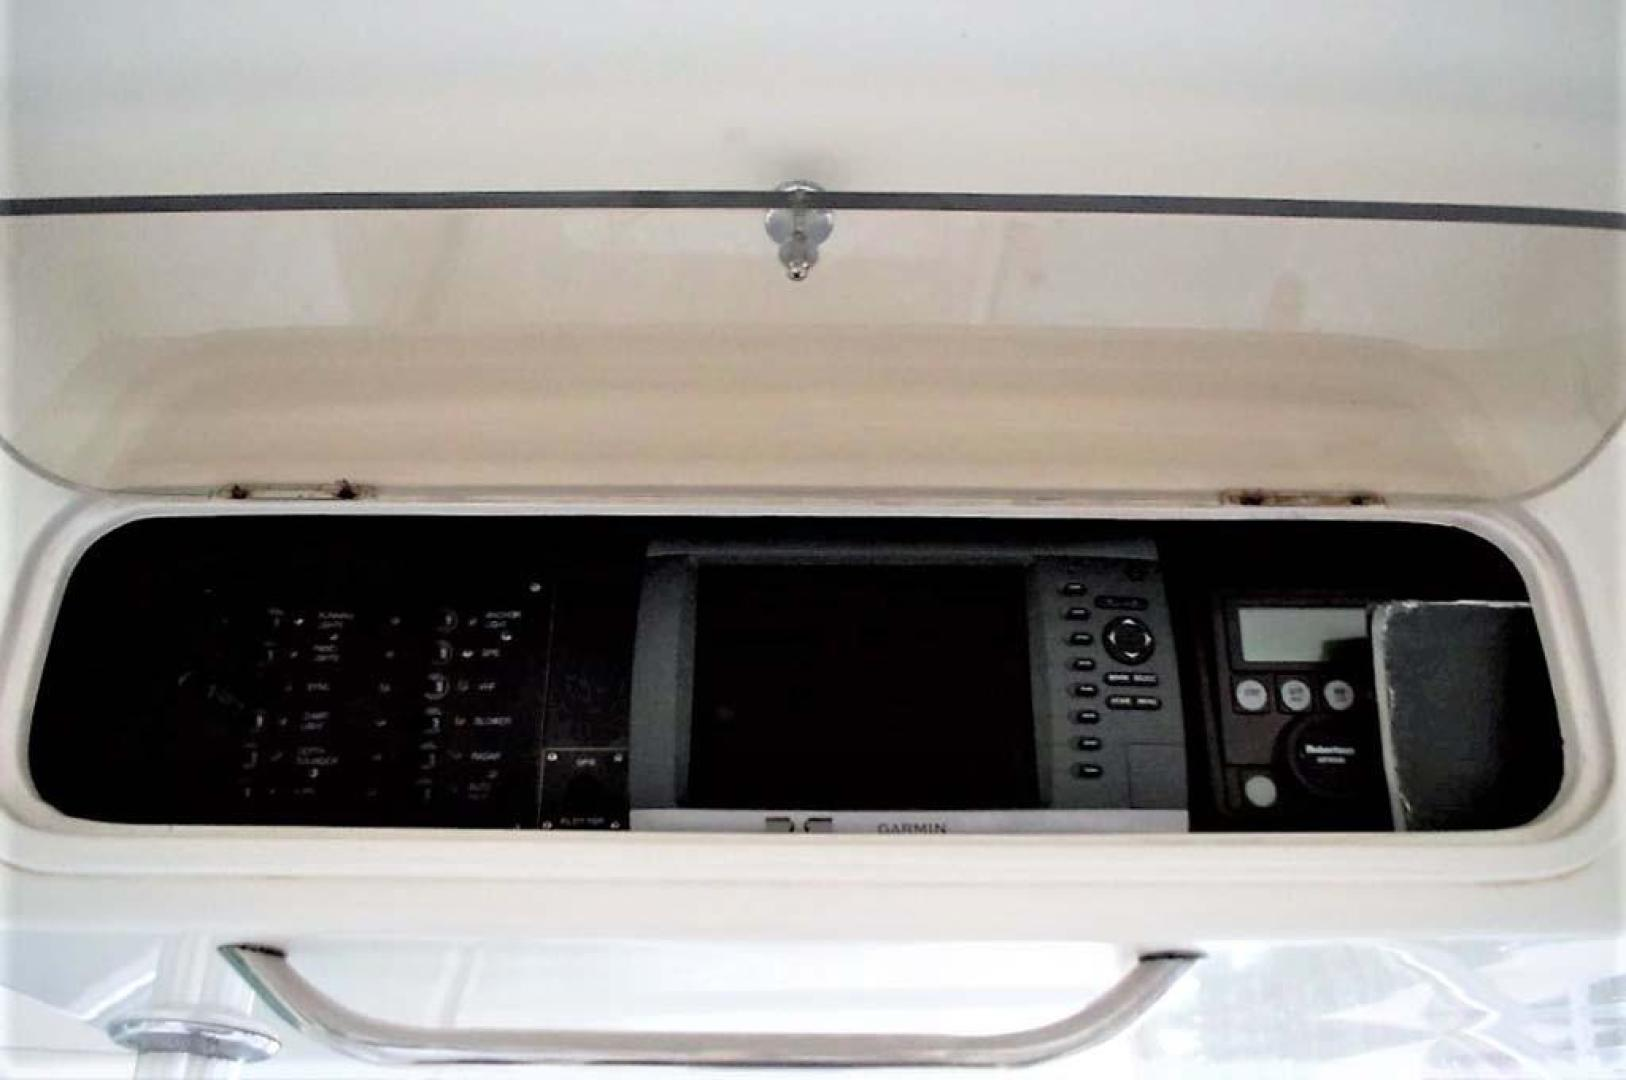 Ocean-Yachts-53-Super-Sport-1998-Made-in-the-Shade-Stuart-United-States-Overhead-Electronics-929980